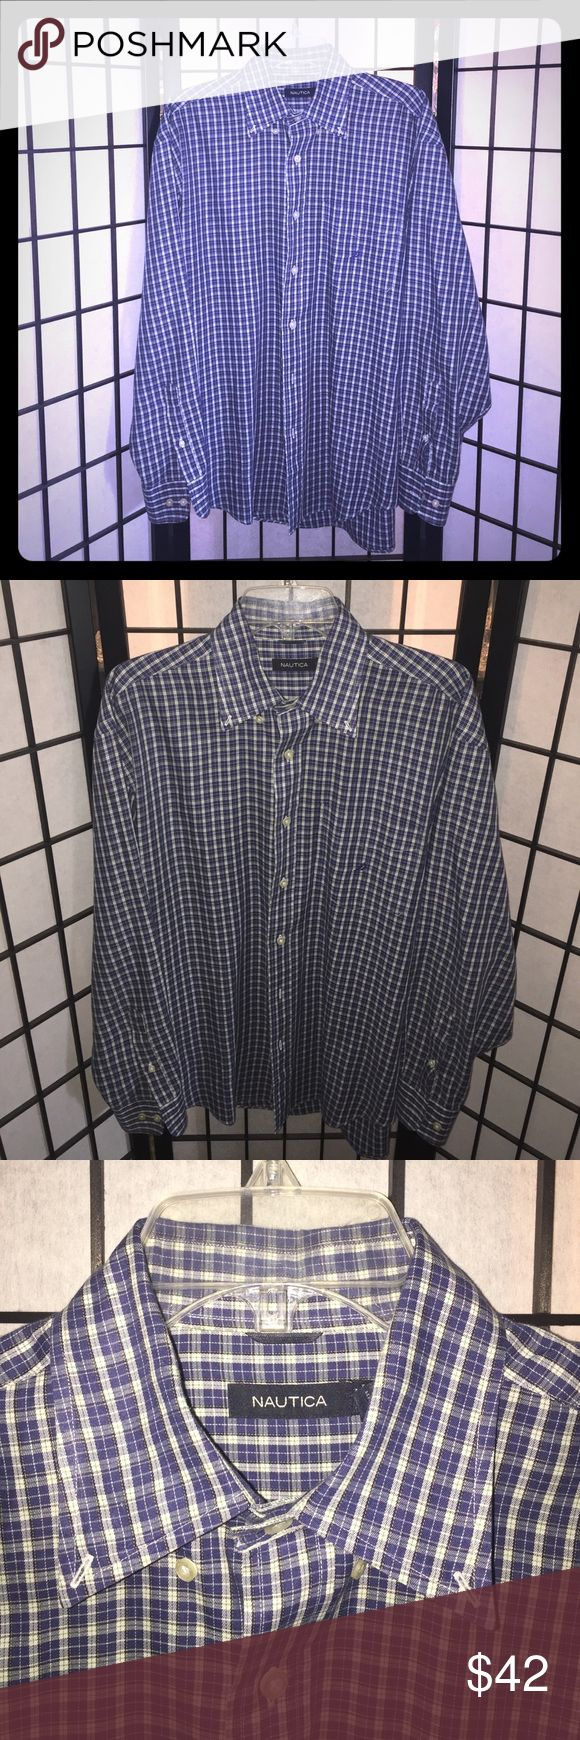 Mens Nautica Casual Button Down Shirt Blue Plaid Nautica Blue Plaid Button Down Longsleeve Shirt. Size Large. 60% Cotton 40% Polyester. Excellent preloved condition. 1 pocket in front. Nautica Shirts Casual Button Down Shirts